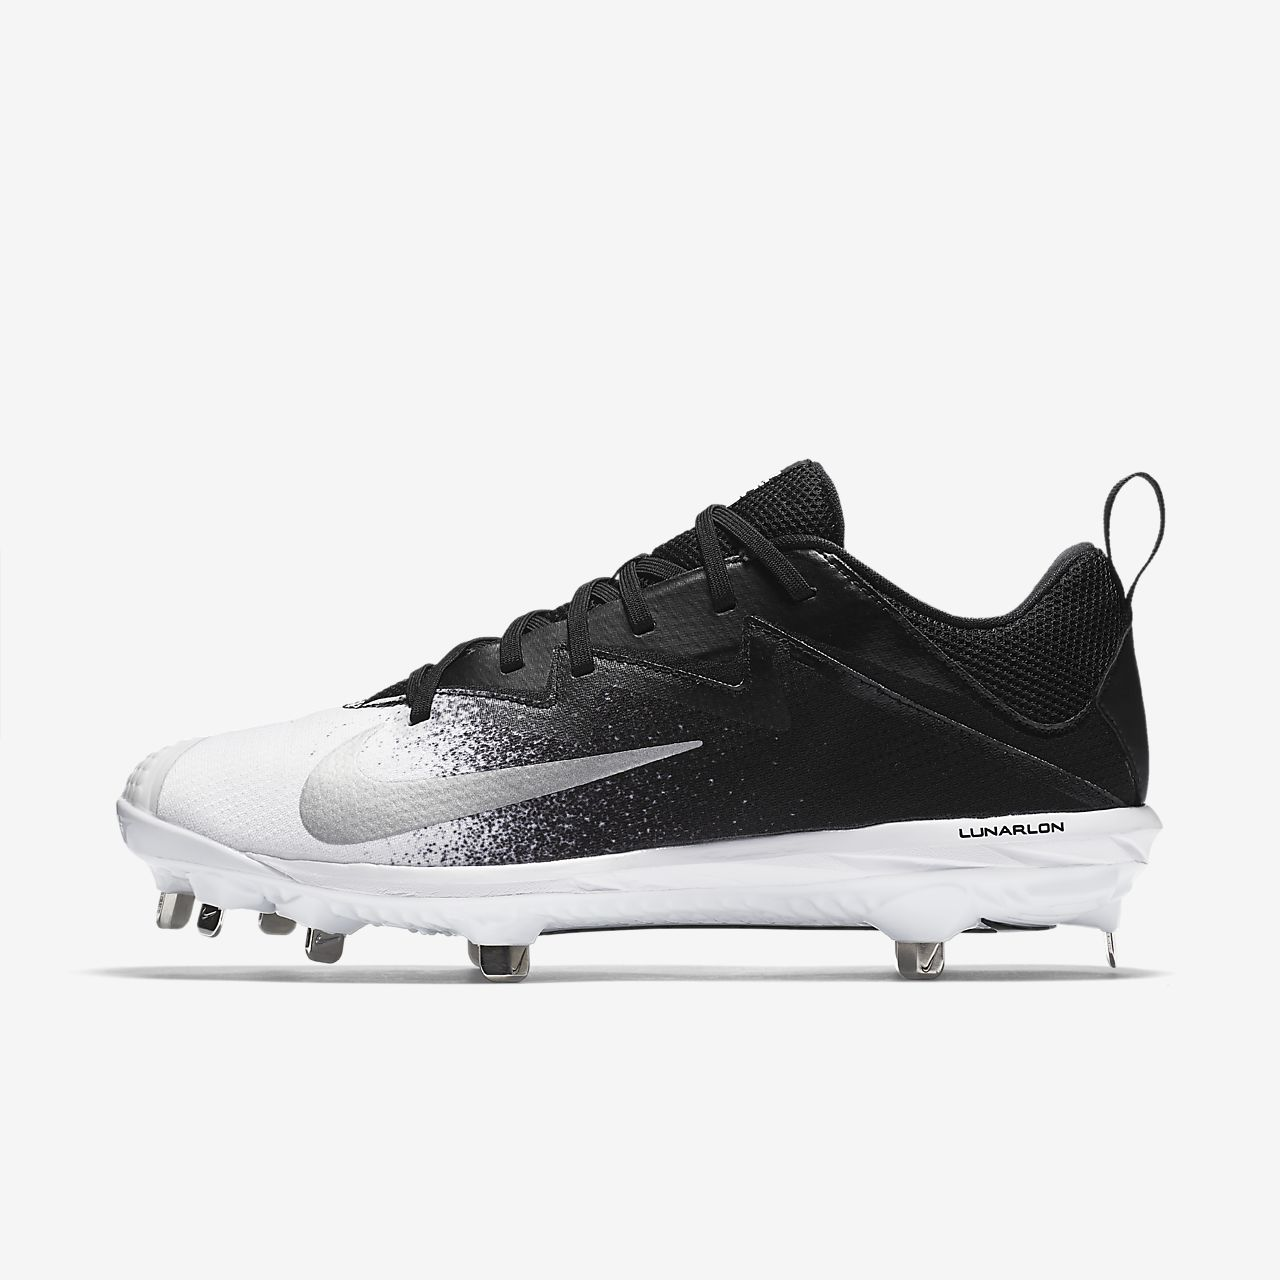 ... Nike Vapor Ultrafly Pro Men's Baseball Cleat